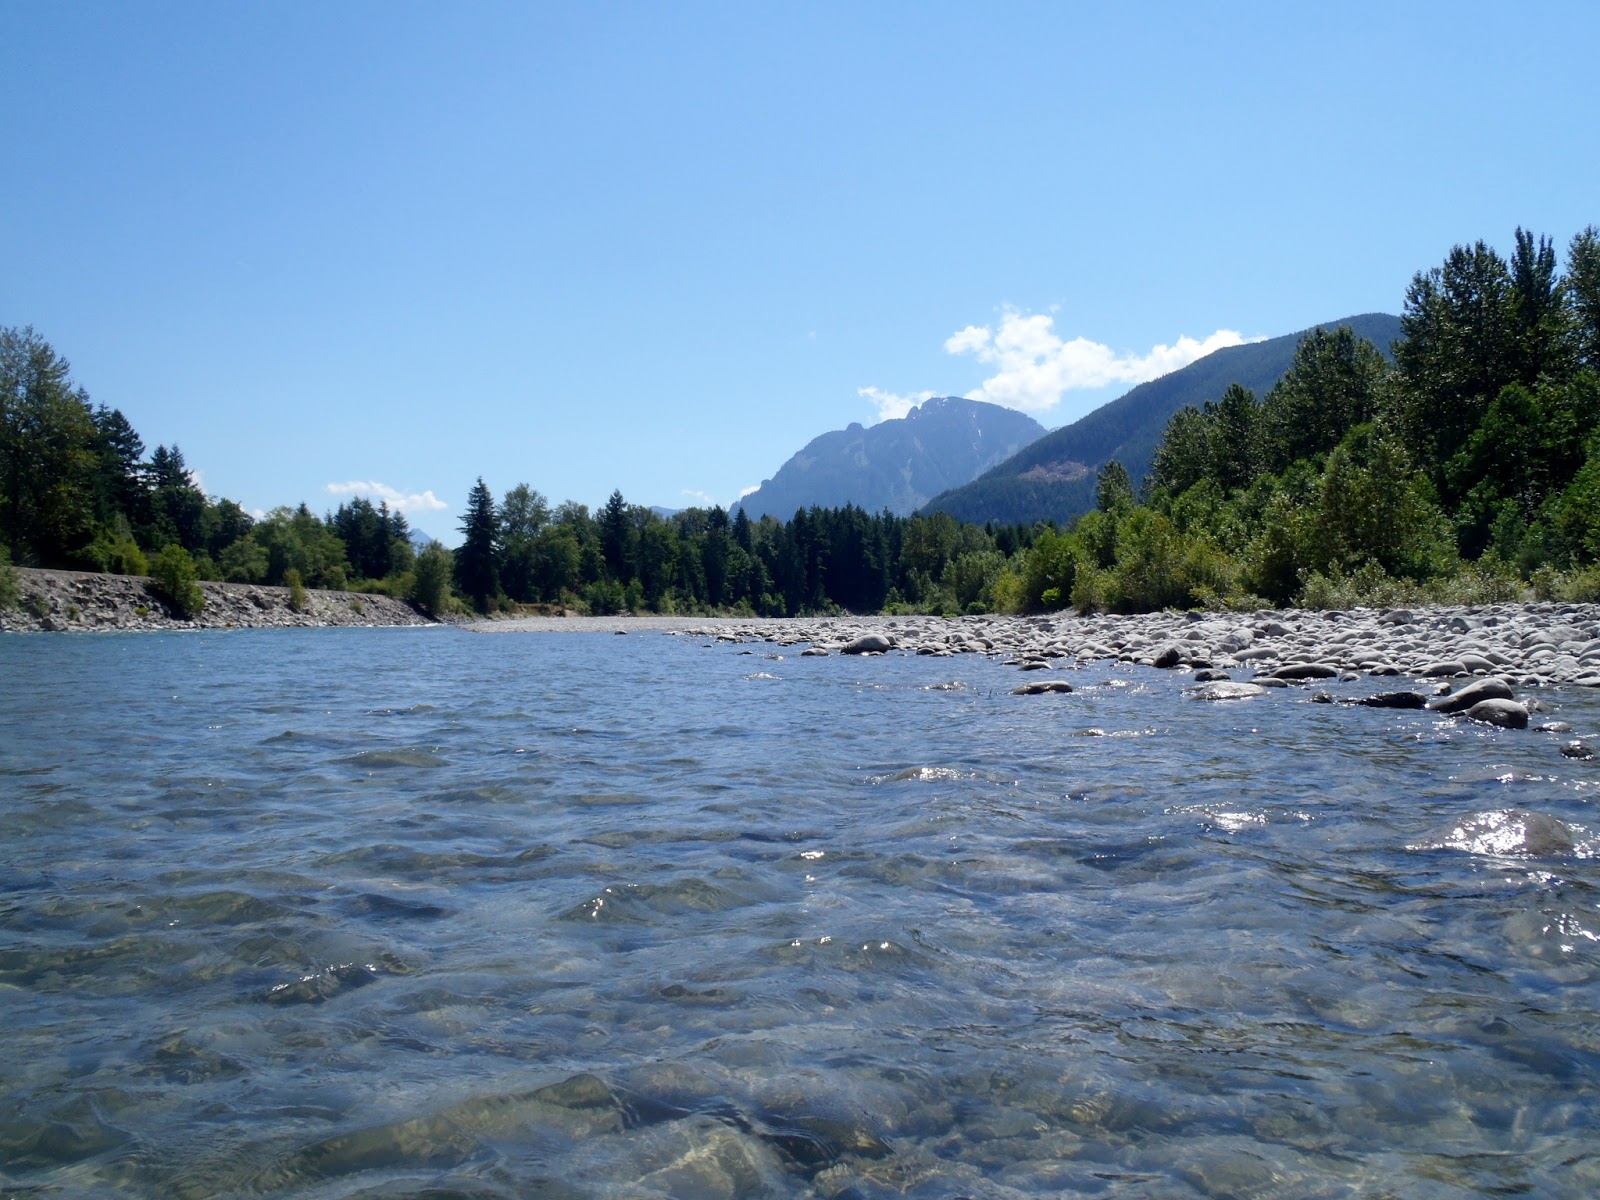 Pacific Northwest Seasons Kayaking The Sky A Long But Fun Day On - A long river